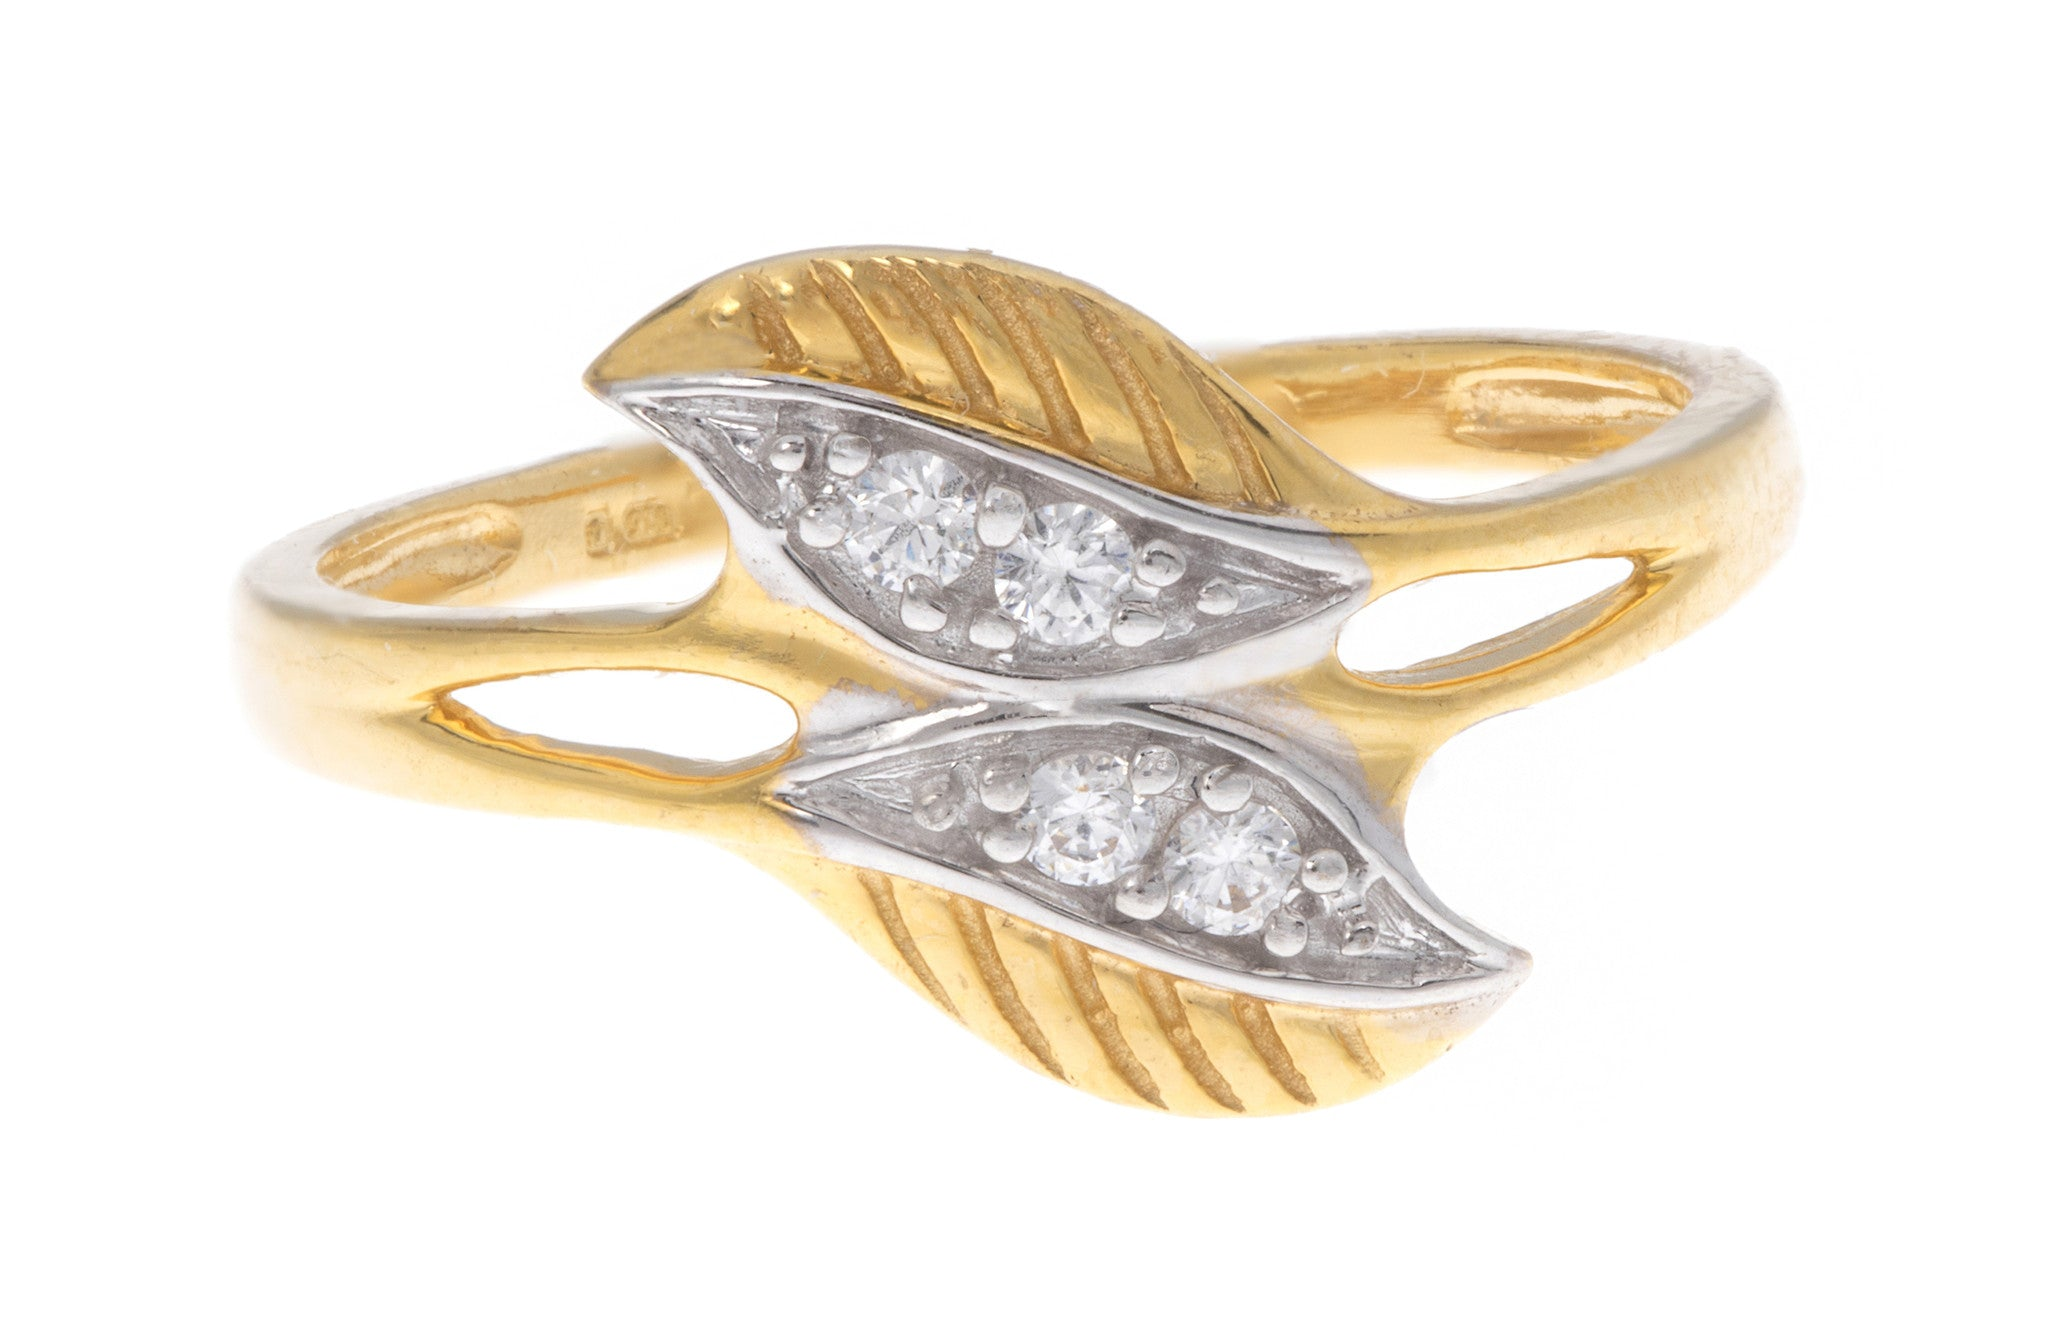 22ct Yellow Gold Double Leaf Dress Ring set with Cubic Zirconias, Minar Jewellers - 2